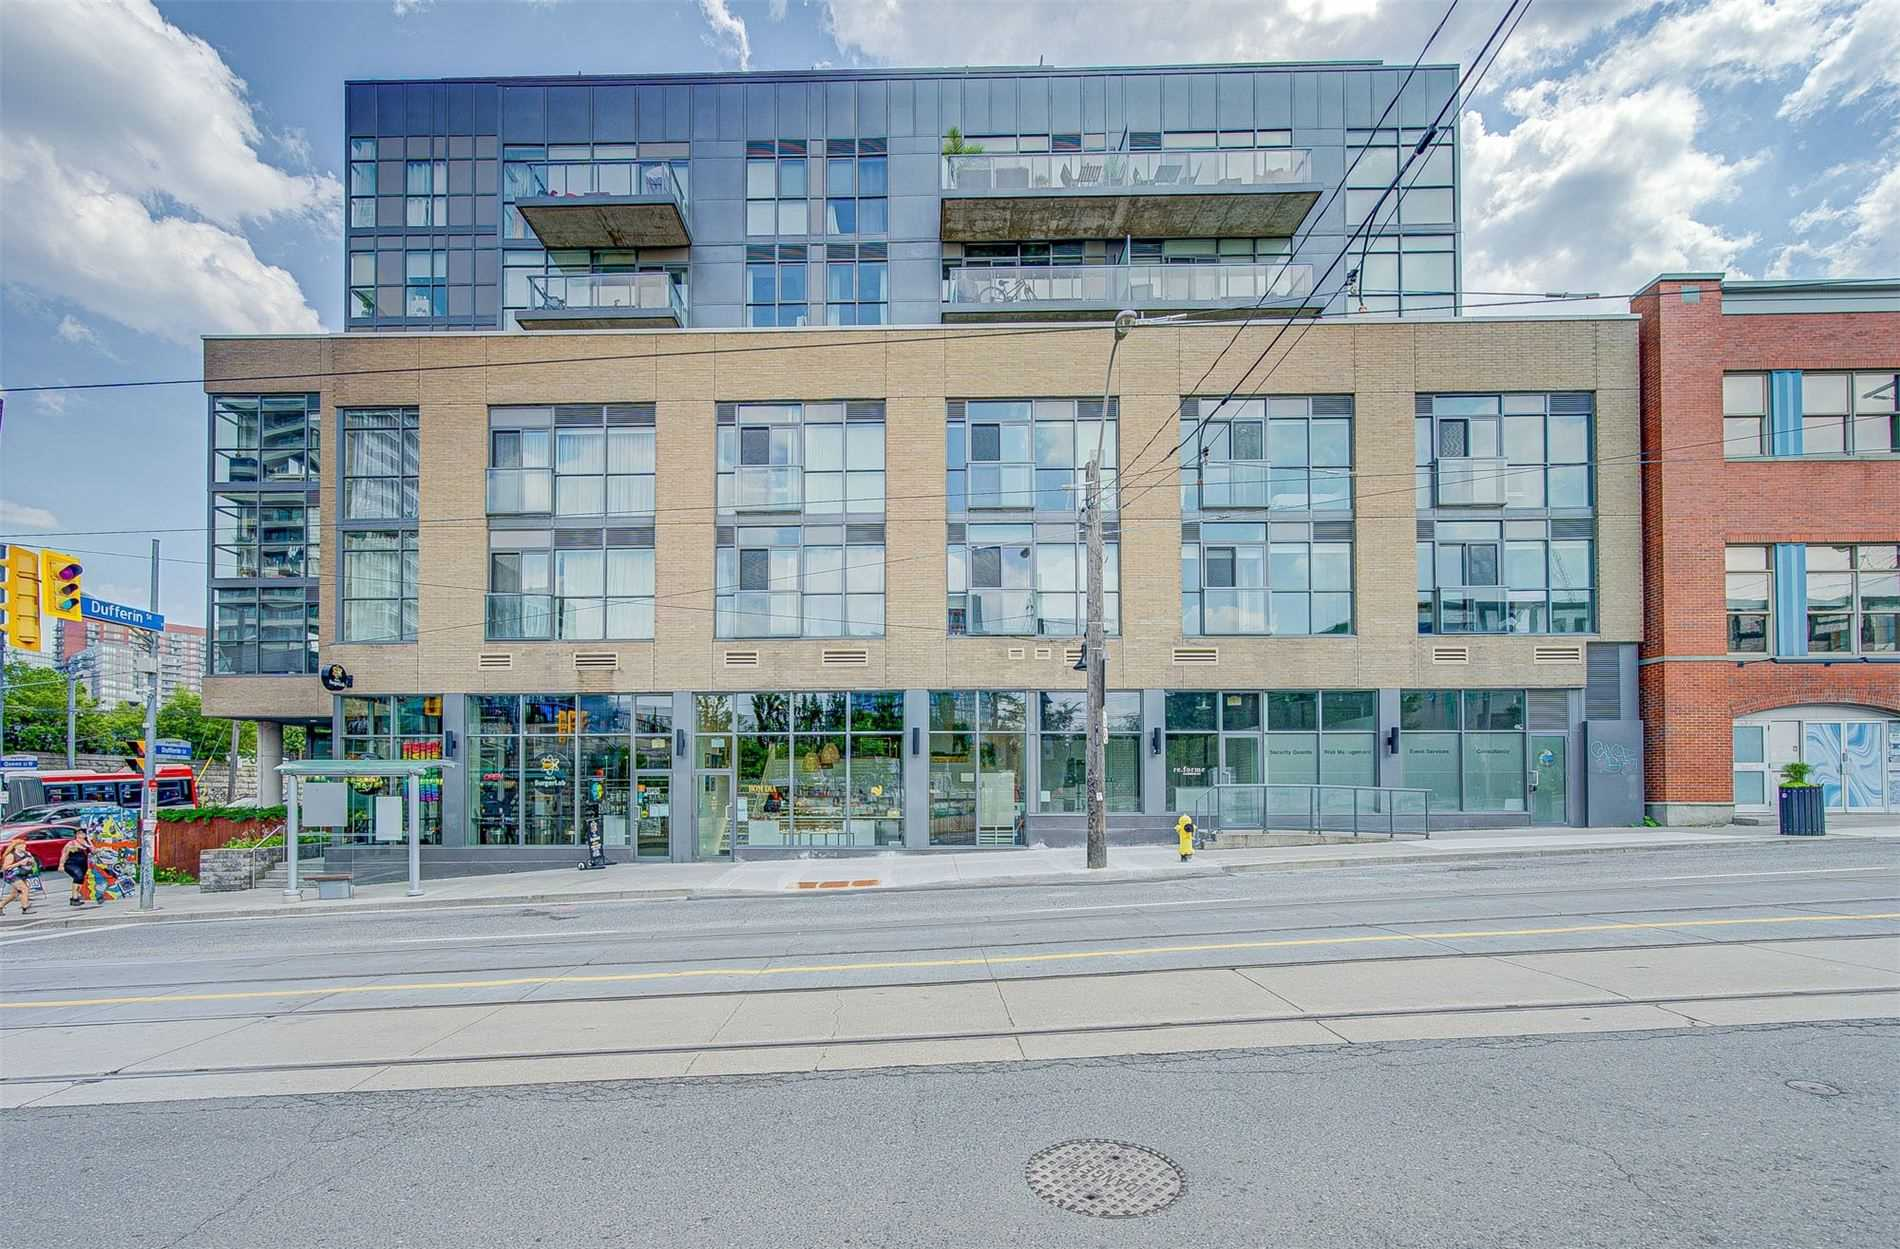 Commercial/retail For Lease In Toronto , ,1 BathroomBathrooms,Commercial/retail,For Lease,1,Queen